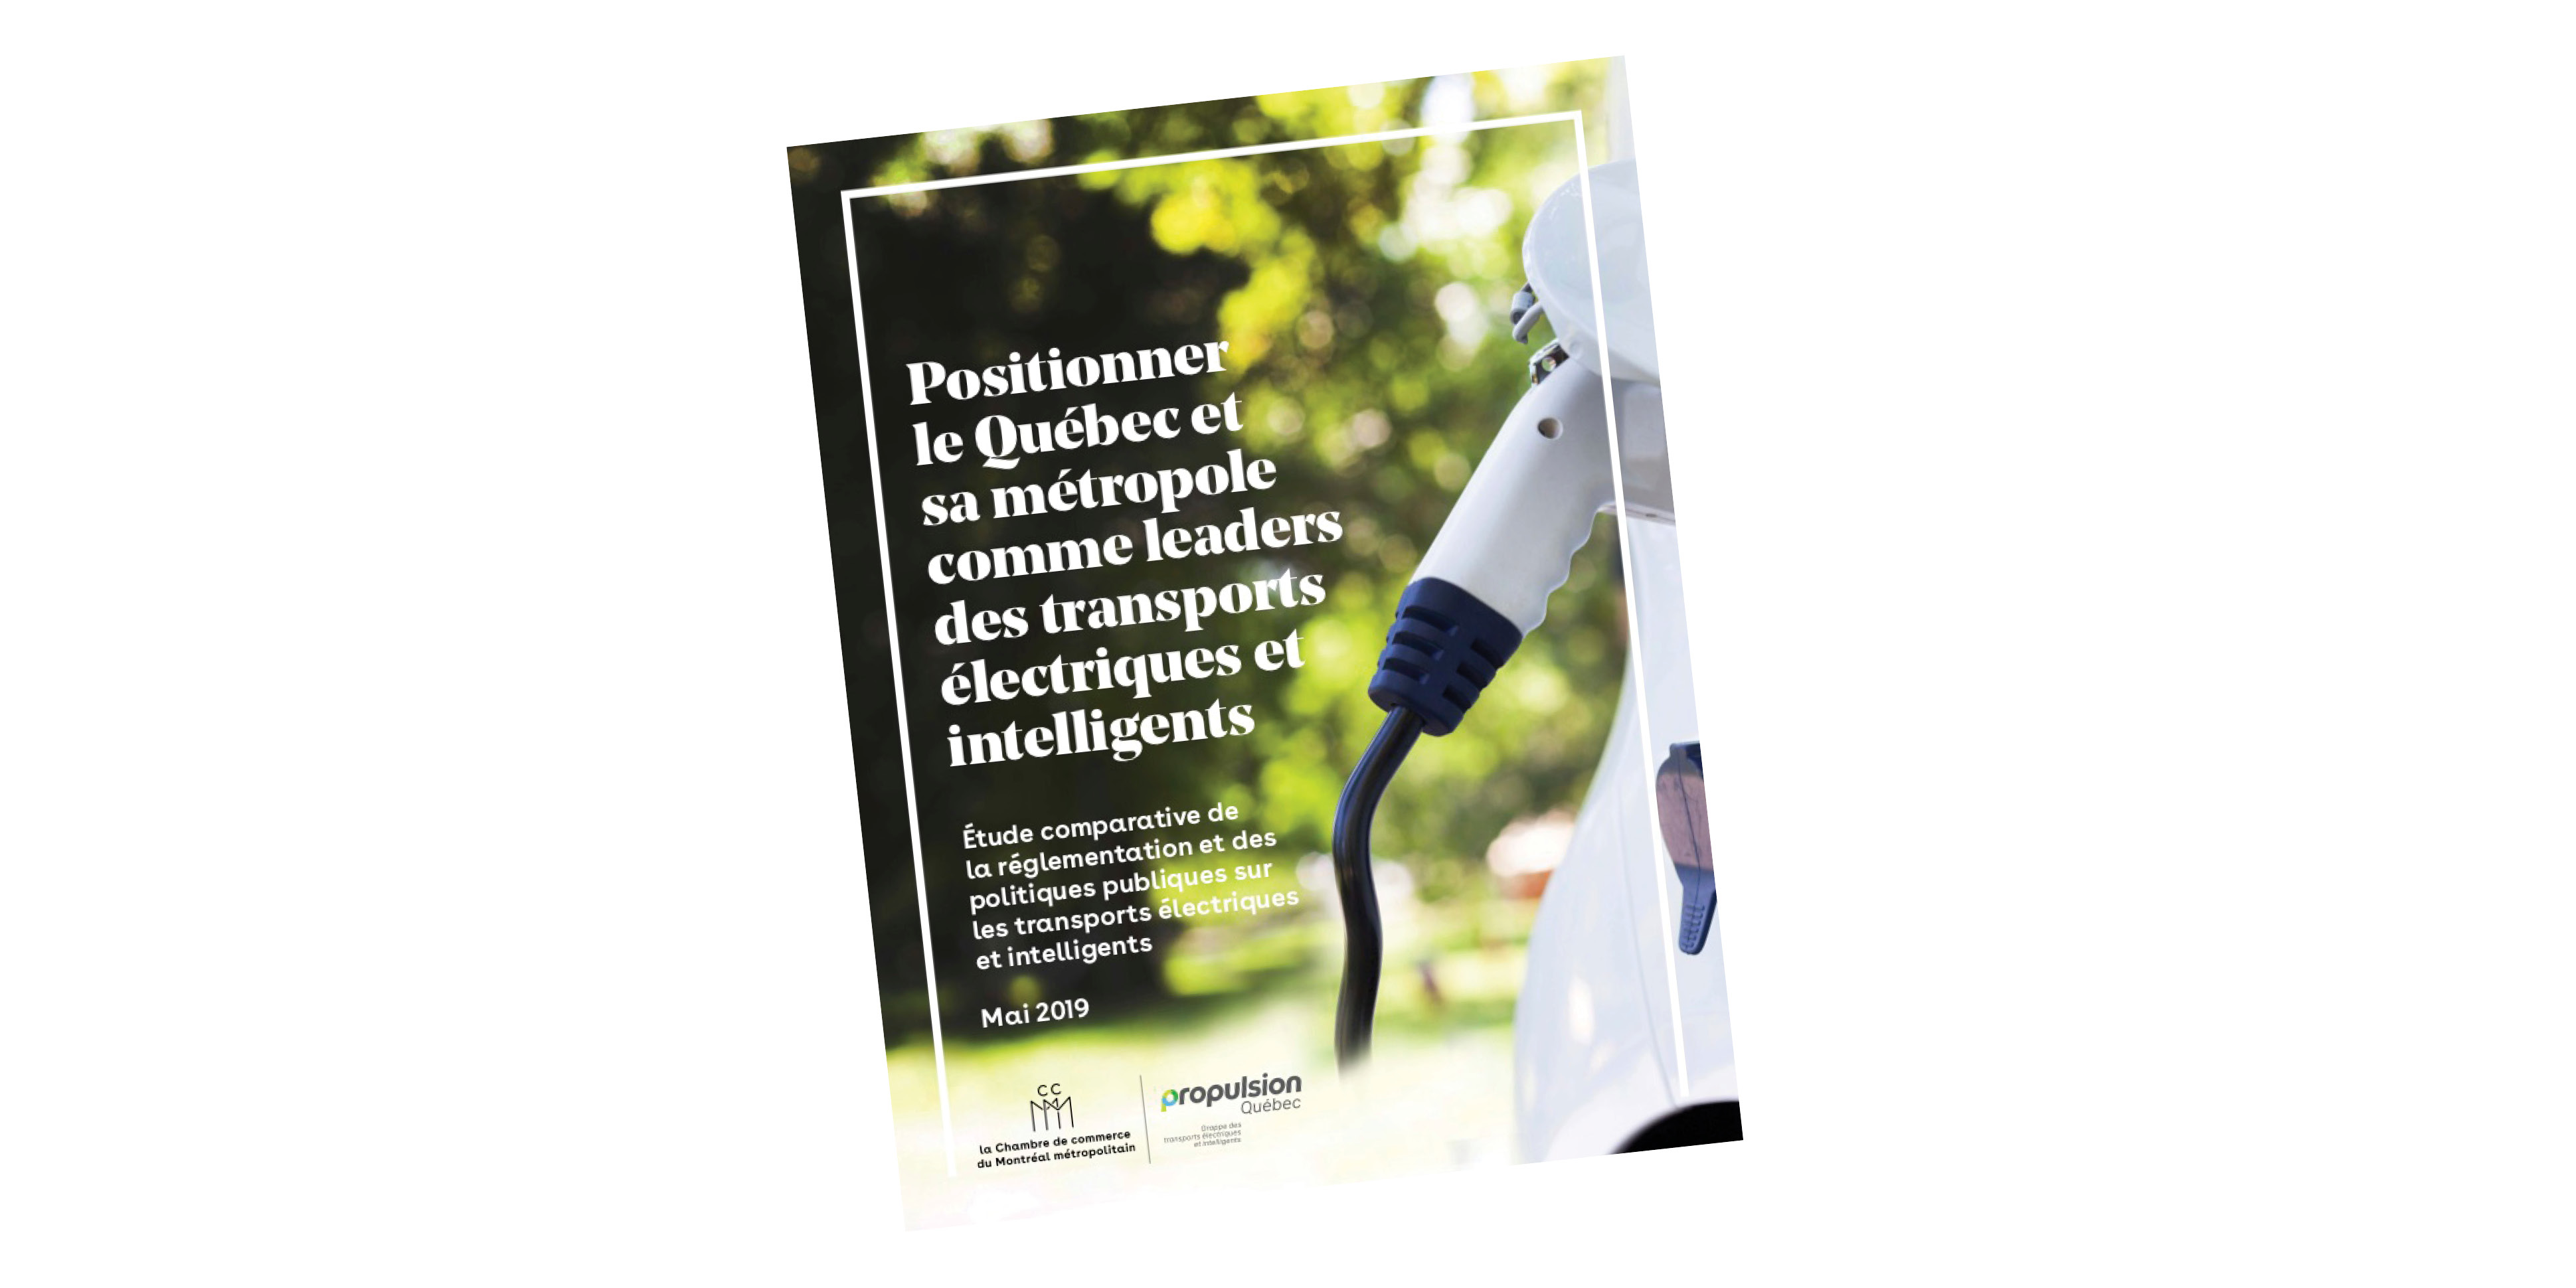 Positioning Quebec and Montréal as leaders in electric and smart transportation